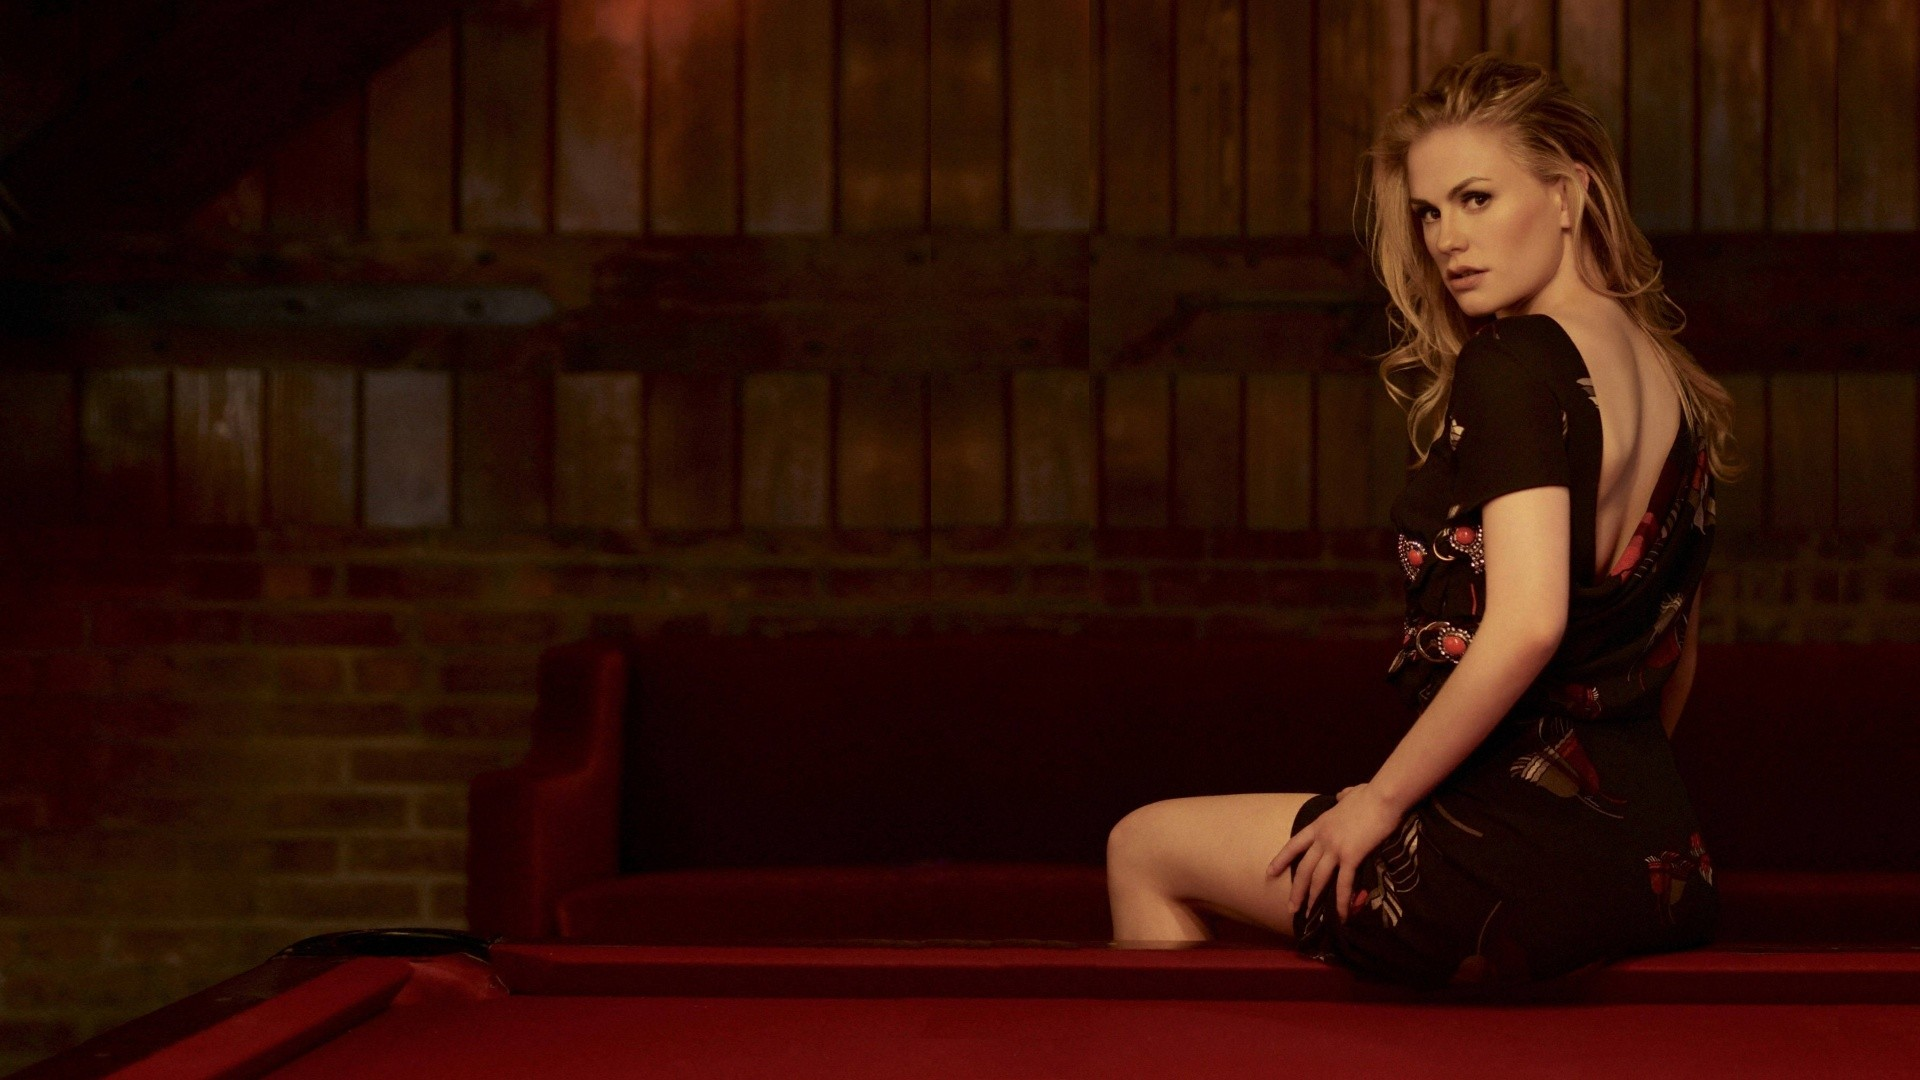 1920x1080 - Anna Paquin Wallpapers 17